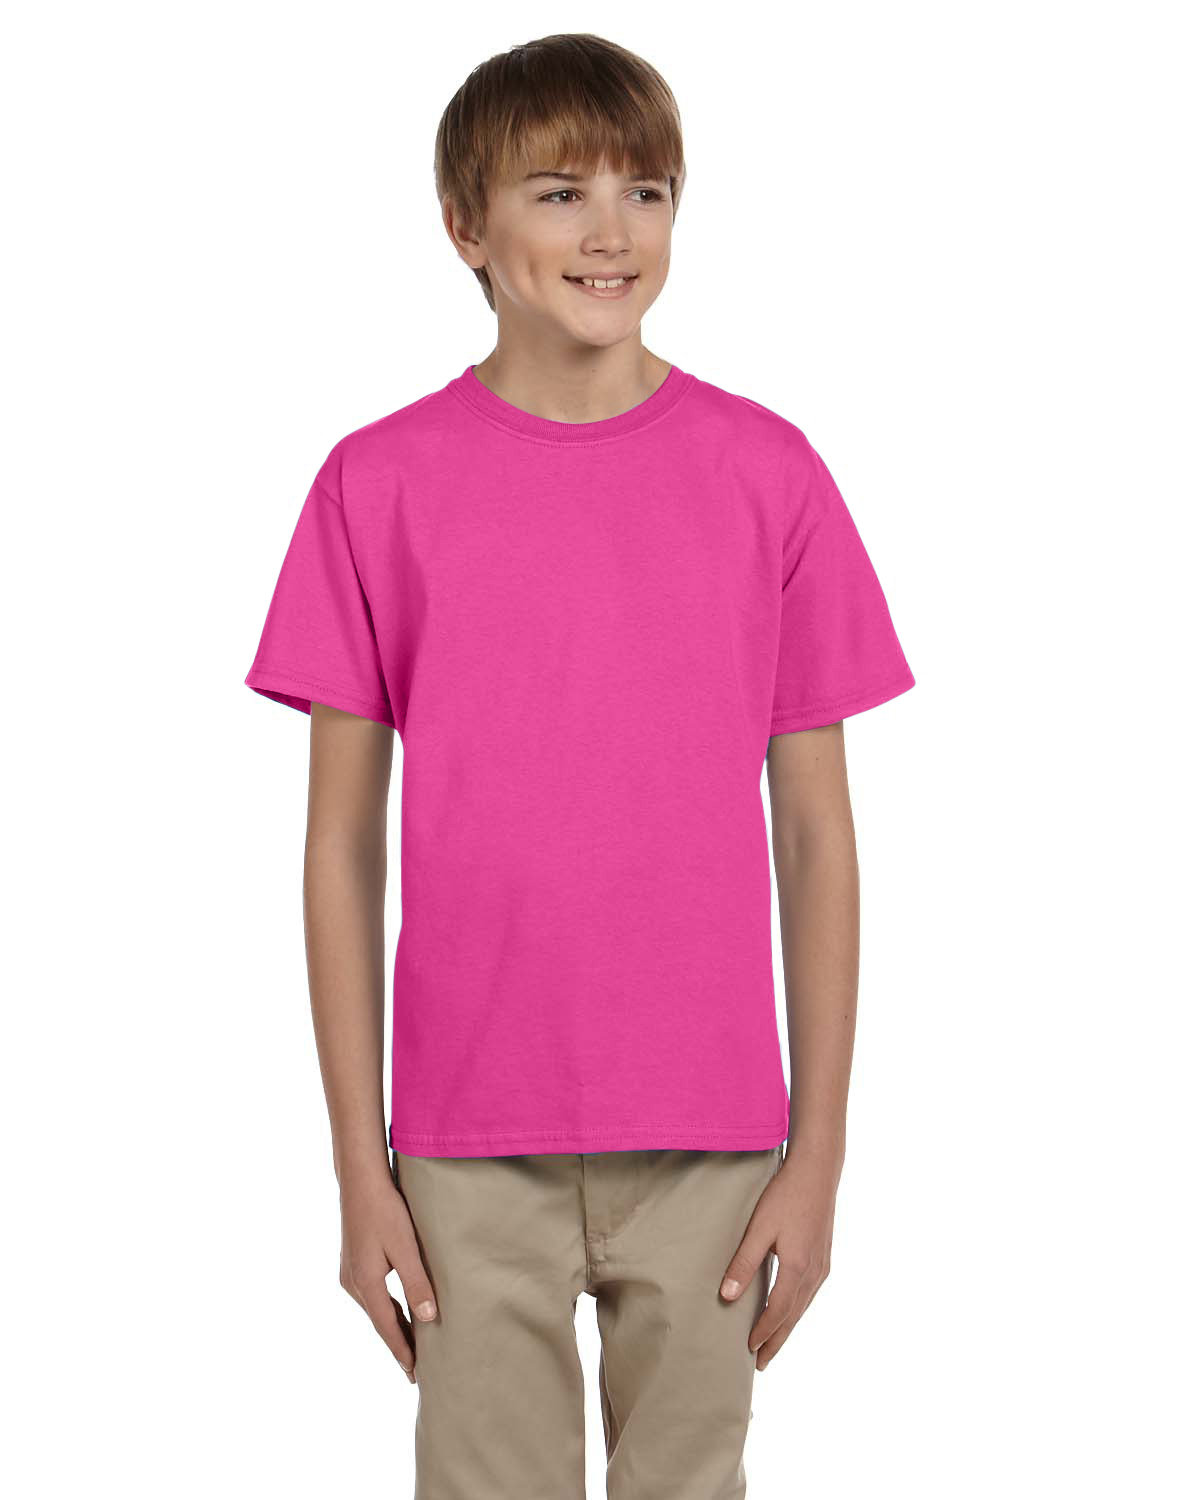 Hanes Youth 50/50 T-Shirt WOW PINK